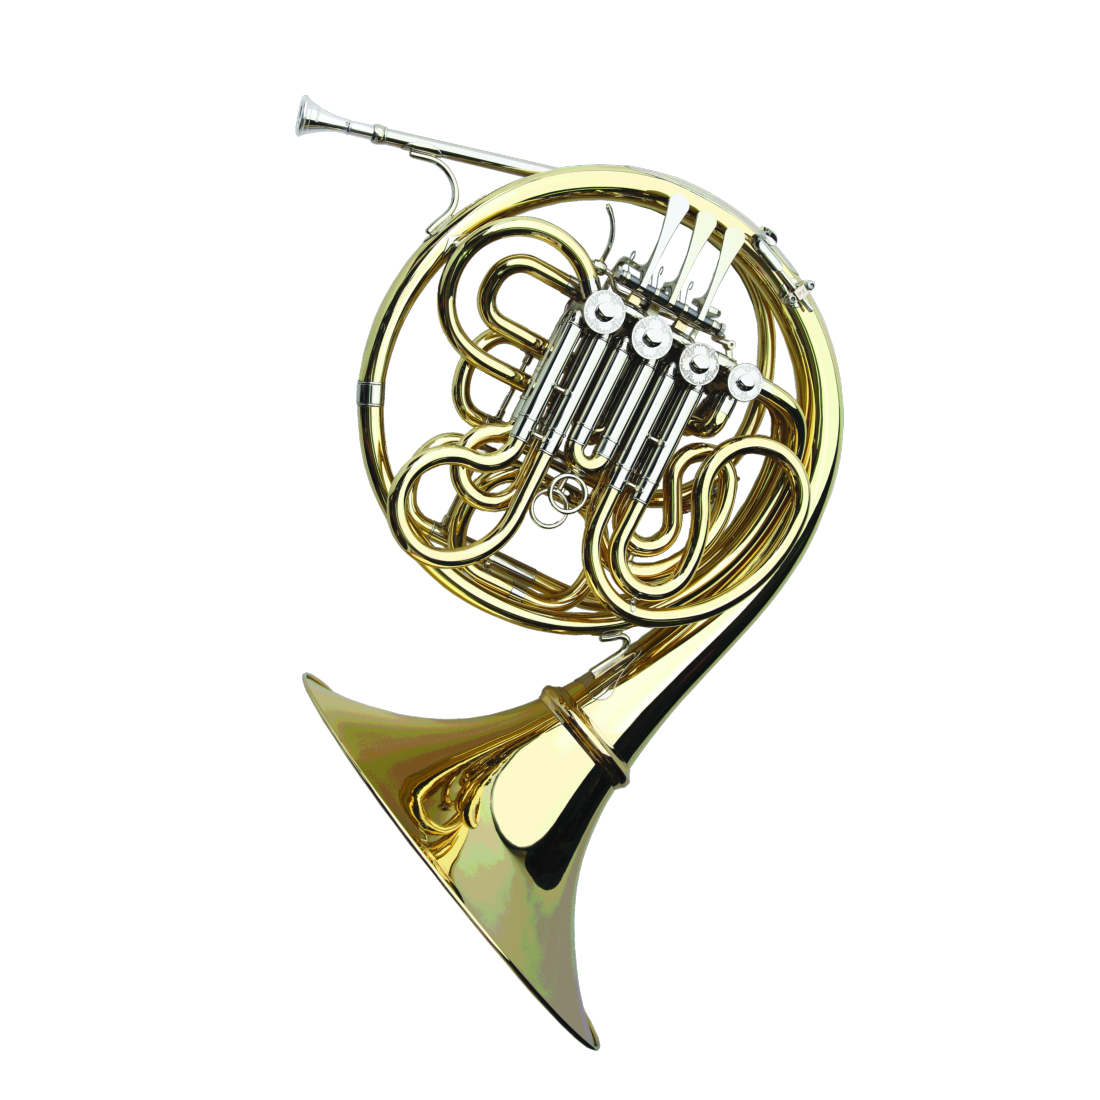 Paxman - Academy Series 4 Bb/F Full Double French Horn-French Horn-Paxman-Music Elements